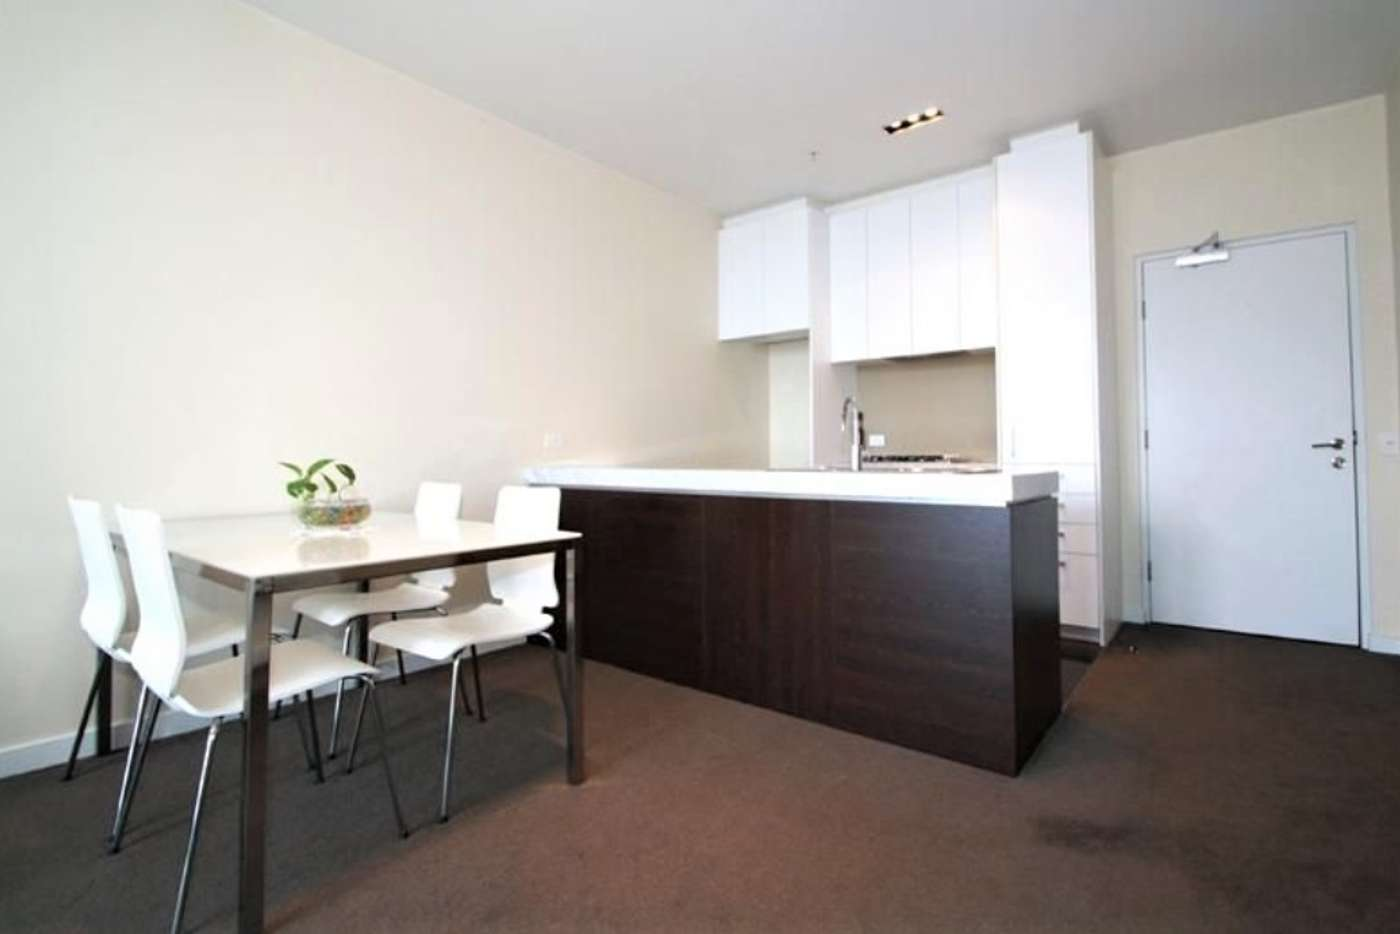 Main view of Homely apartment listing, 1604/483 Swanston St, Melbourne VIC 3000